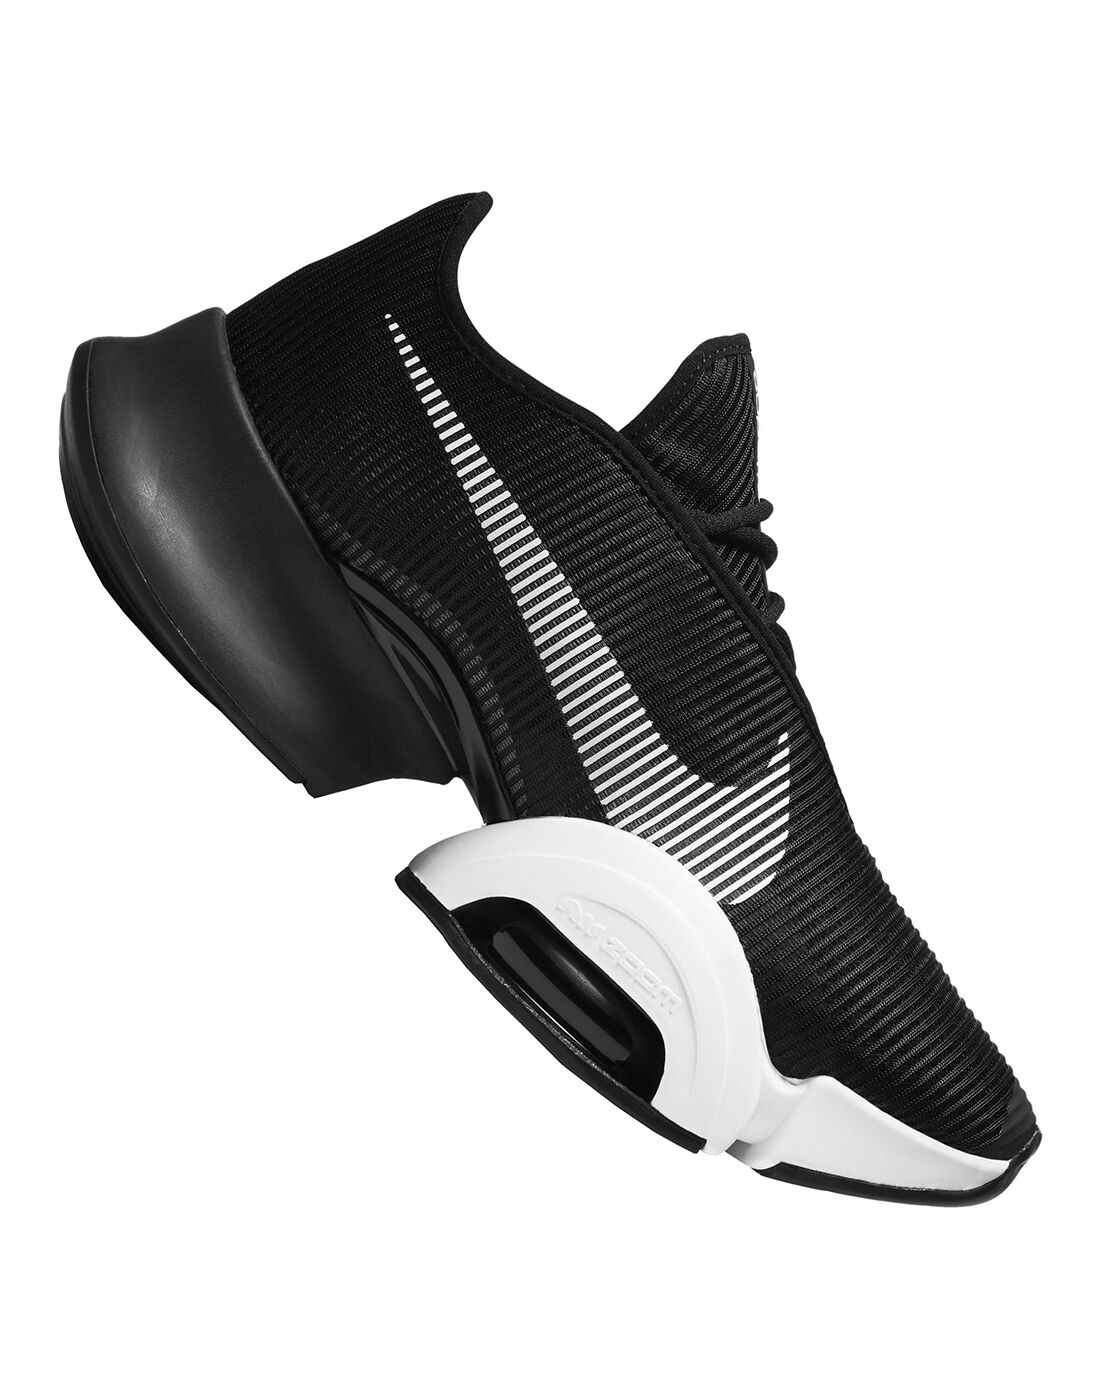 adidas piona femme shoes free patterns | Sites-LSS-Site